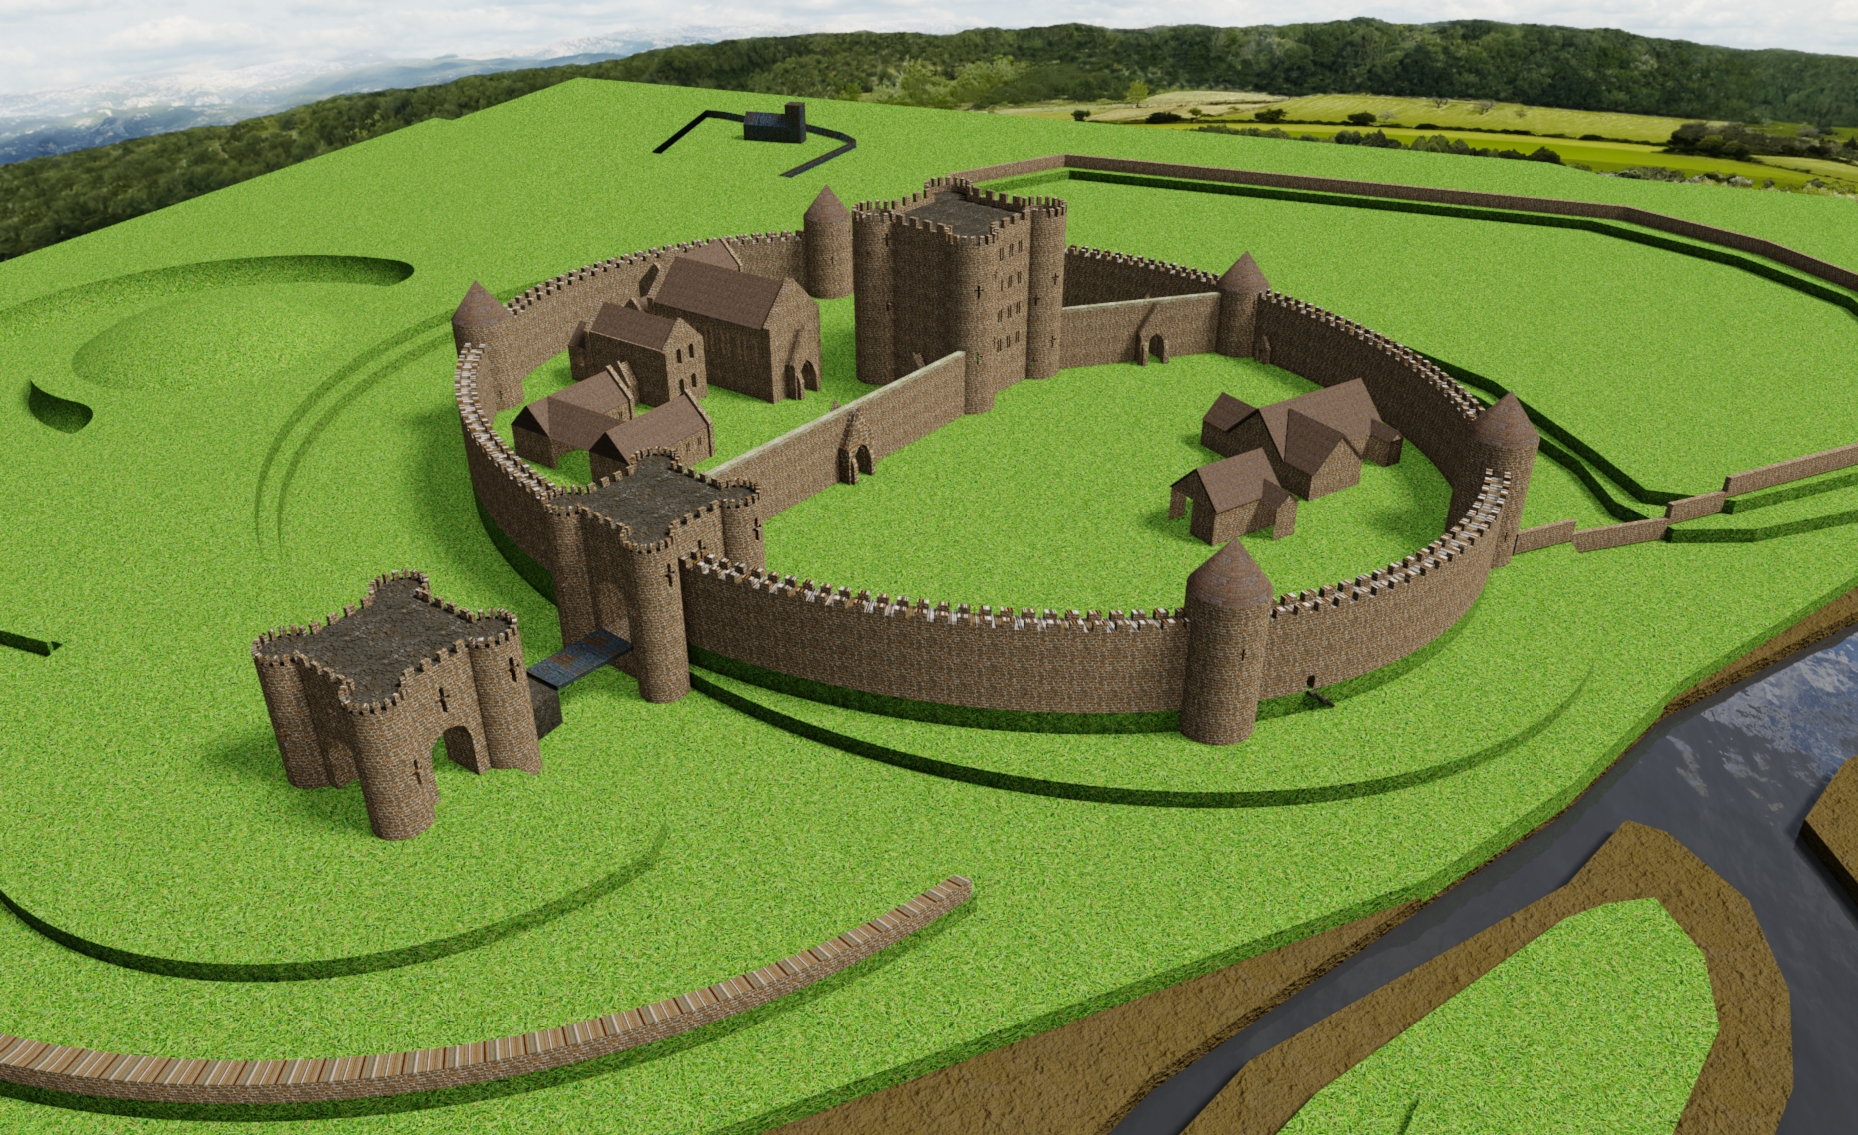 cece7eec9d Sneak Preview Castle Reconstruction